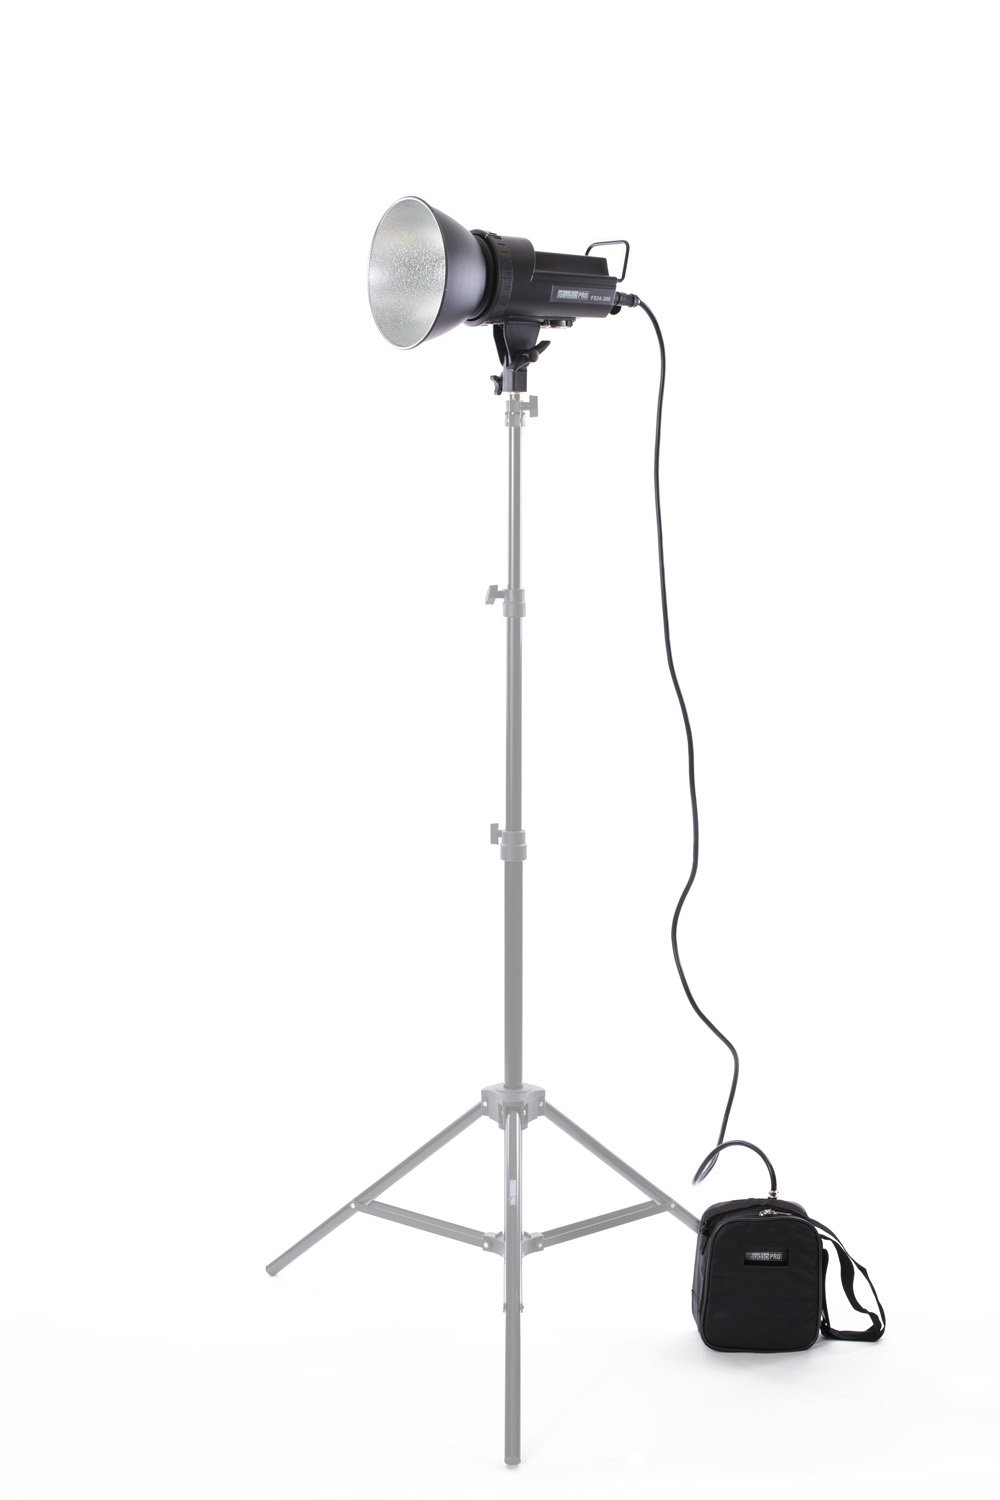 StudioPRO 300W/s AC/DC Dual Power Portable Battery Monolight Strobe Flash Kit by StudioPRO